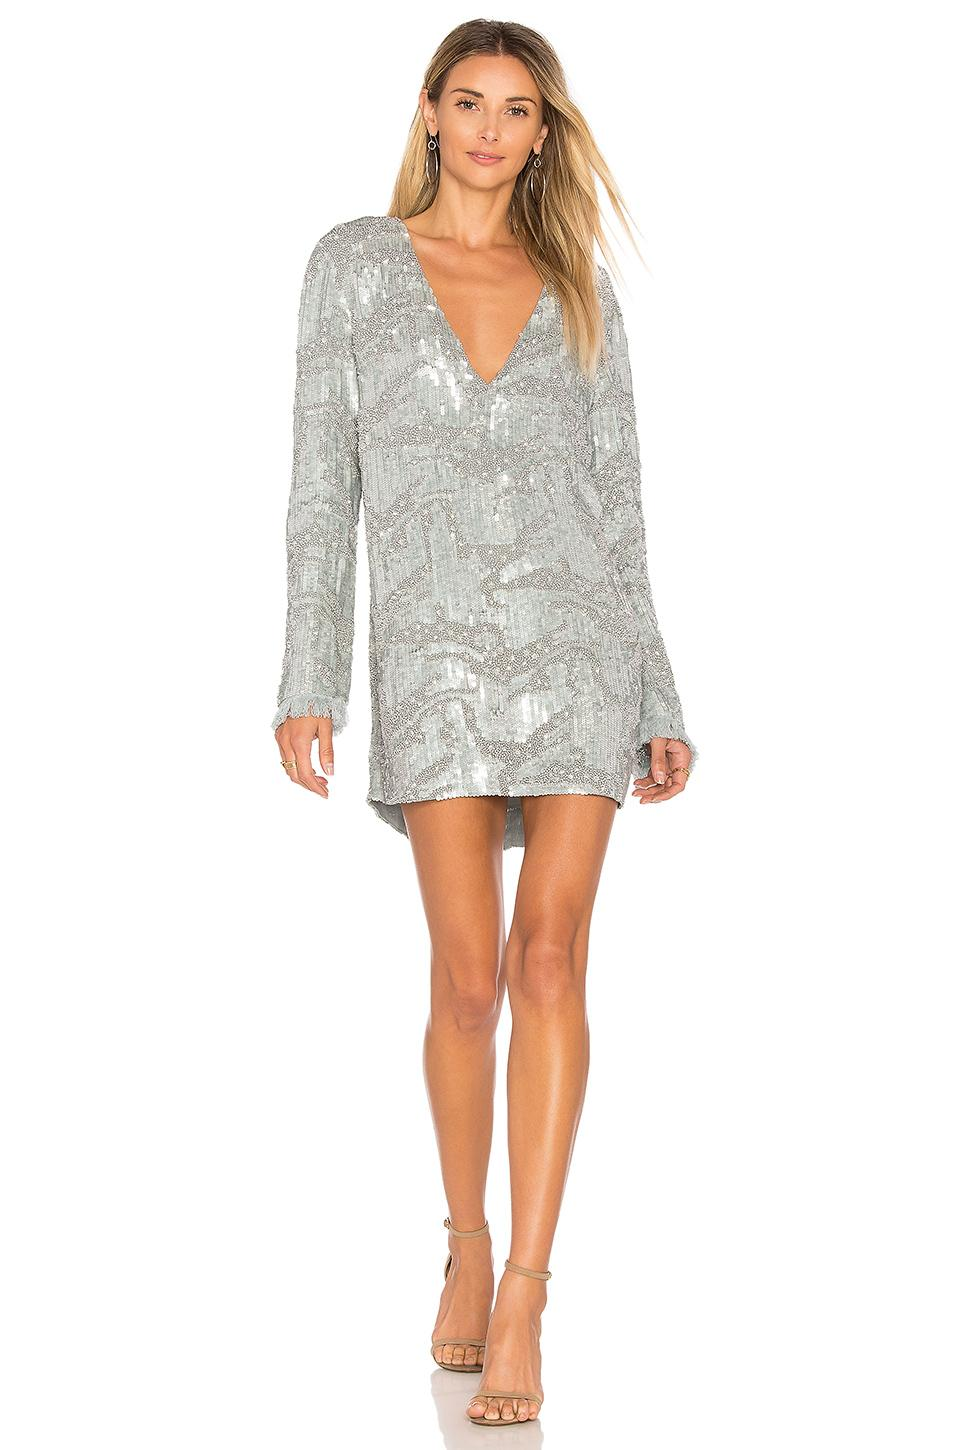 Aje Odyssey Sequin Dress In Gray